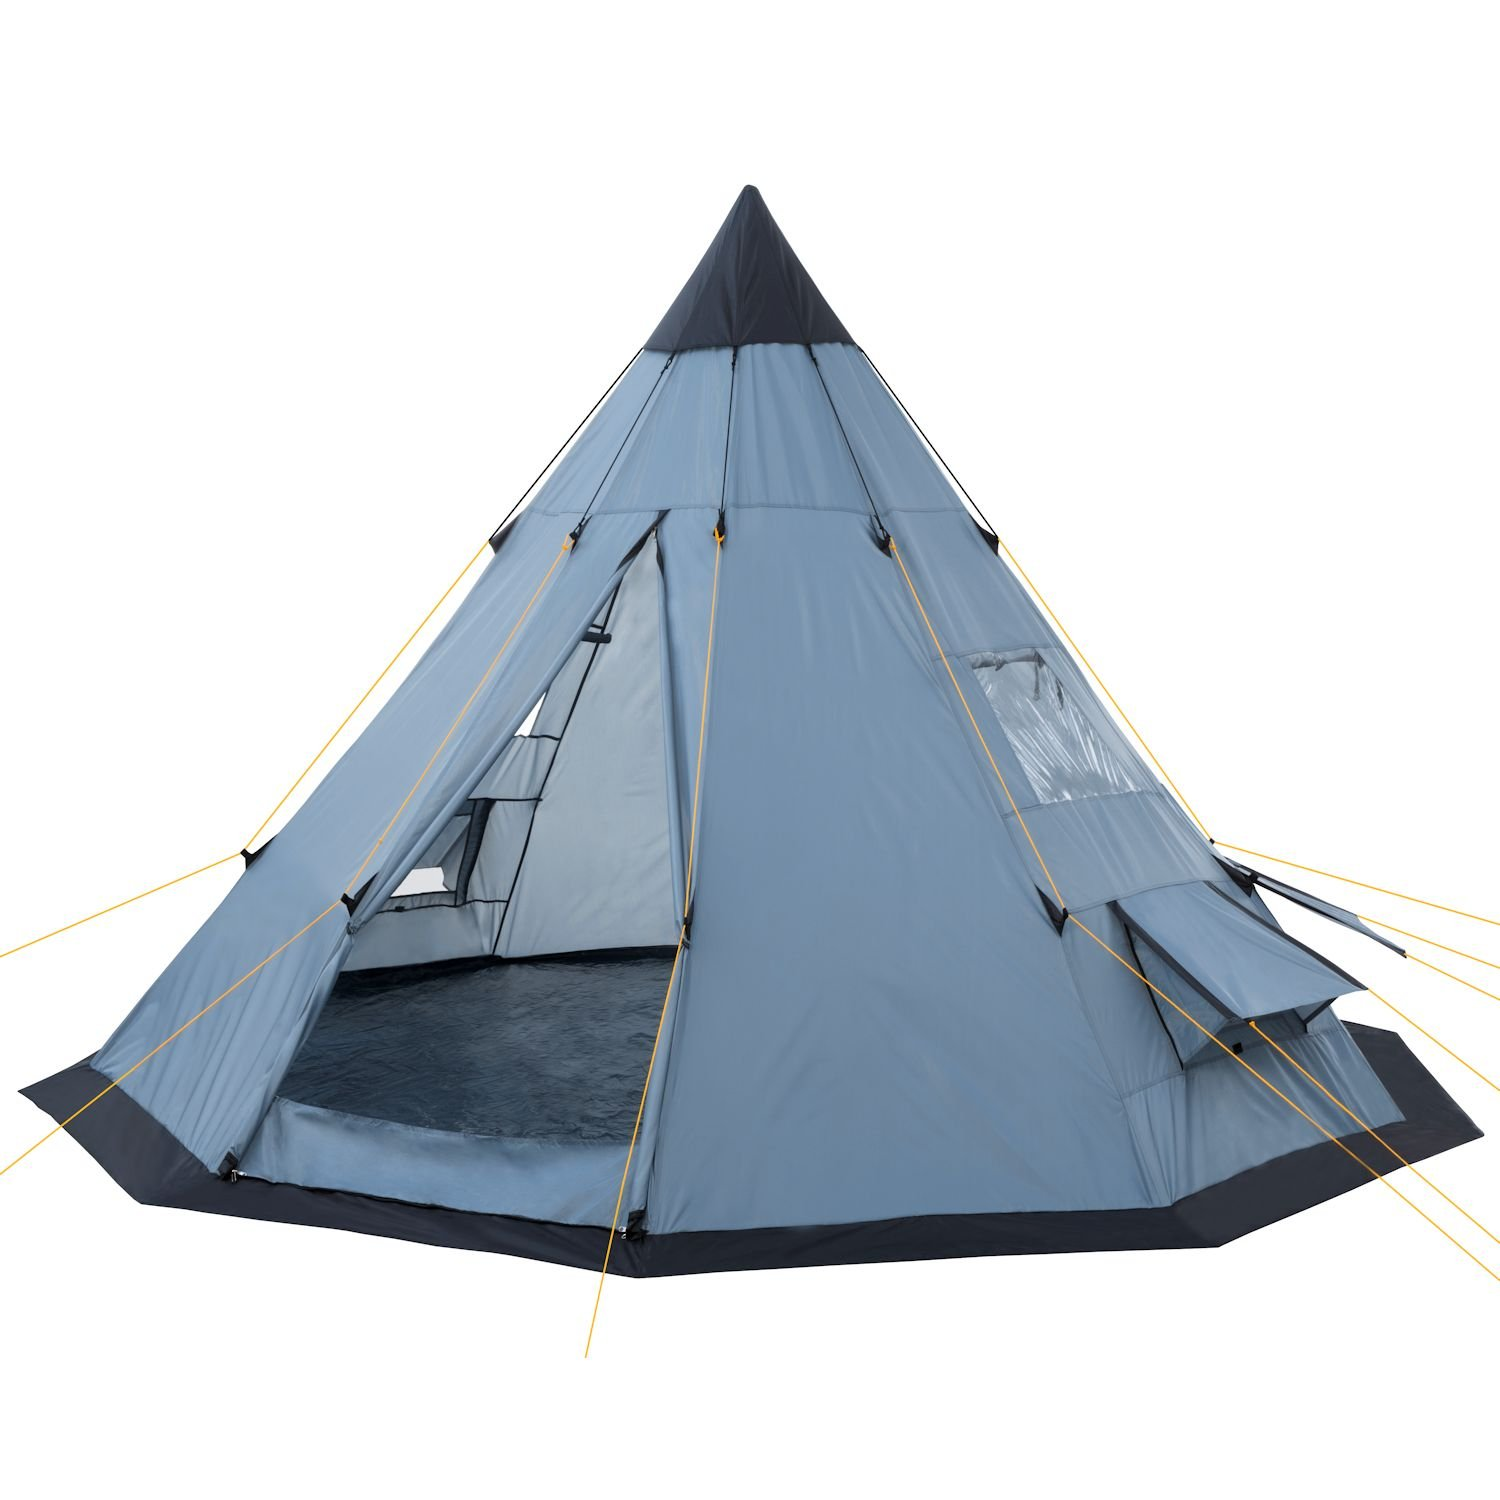 CampFeuer® - Tipi Teepee - Tent, grey/blue Tipi_2